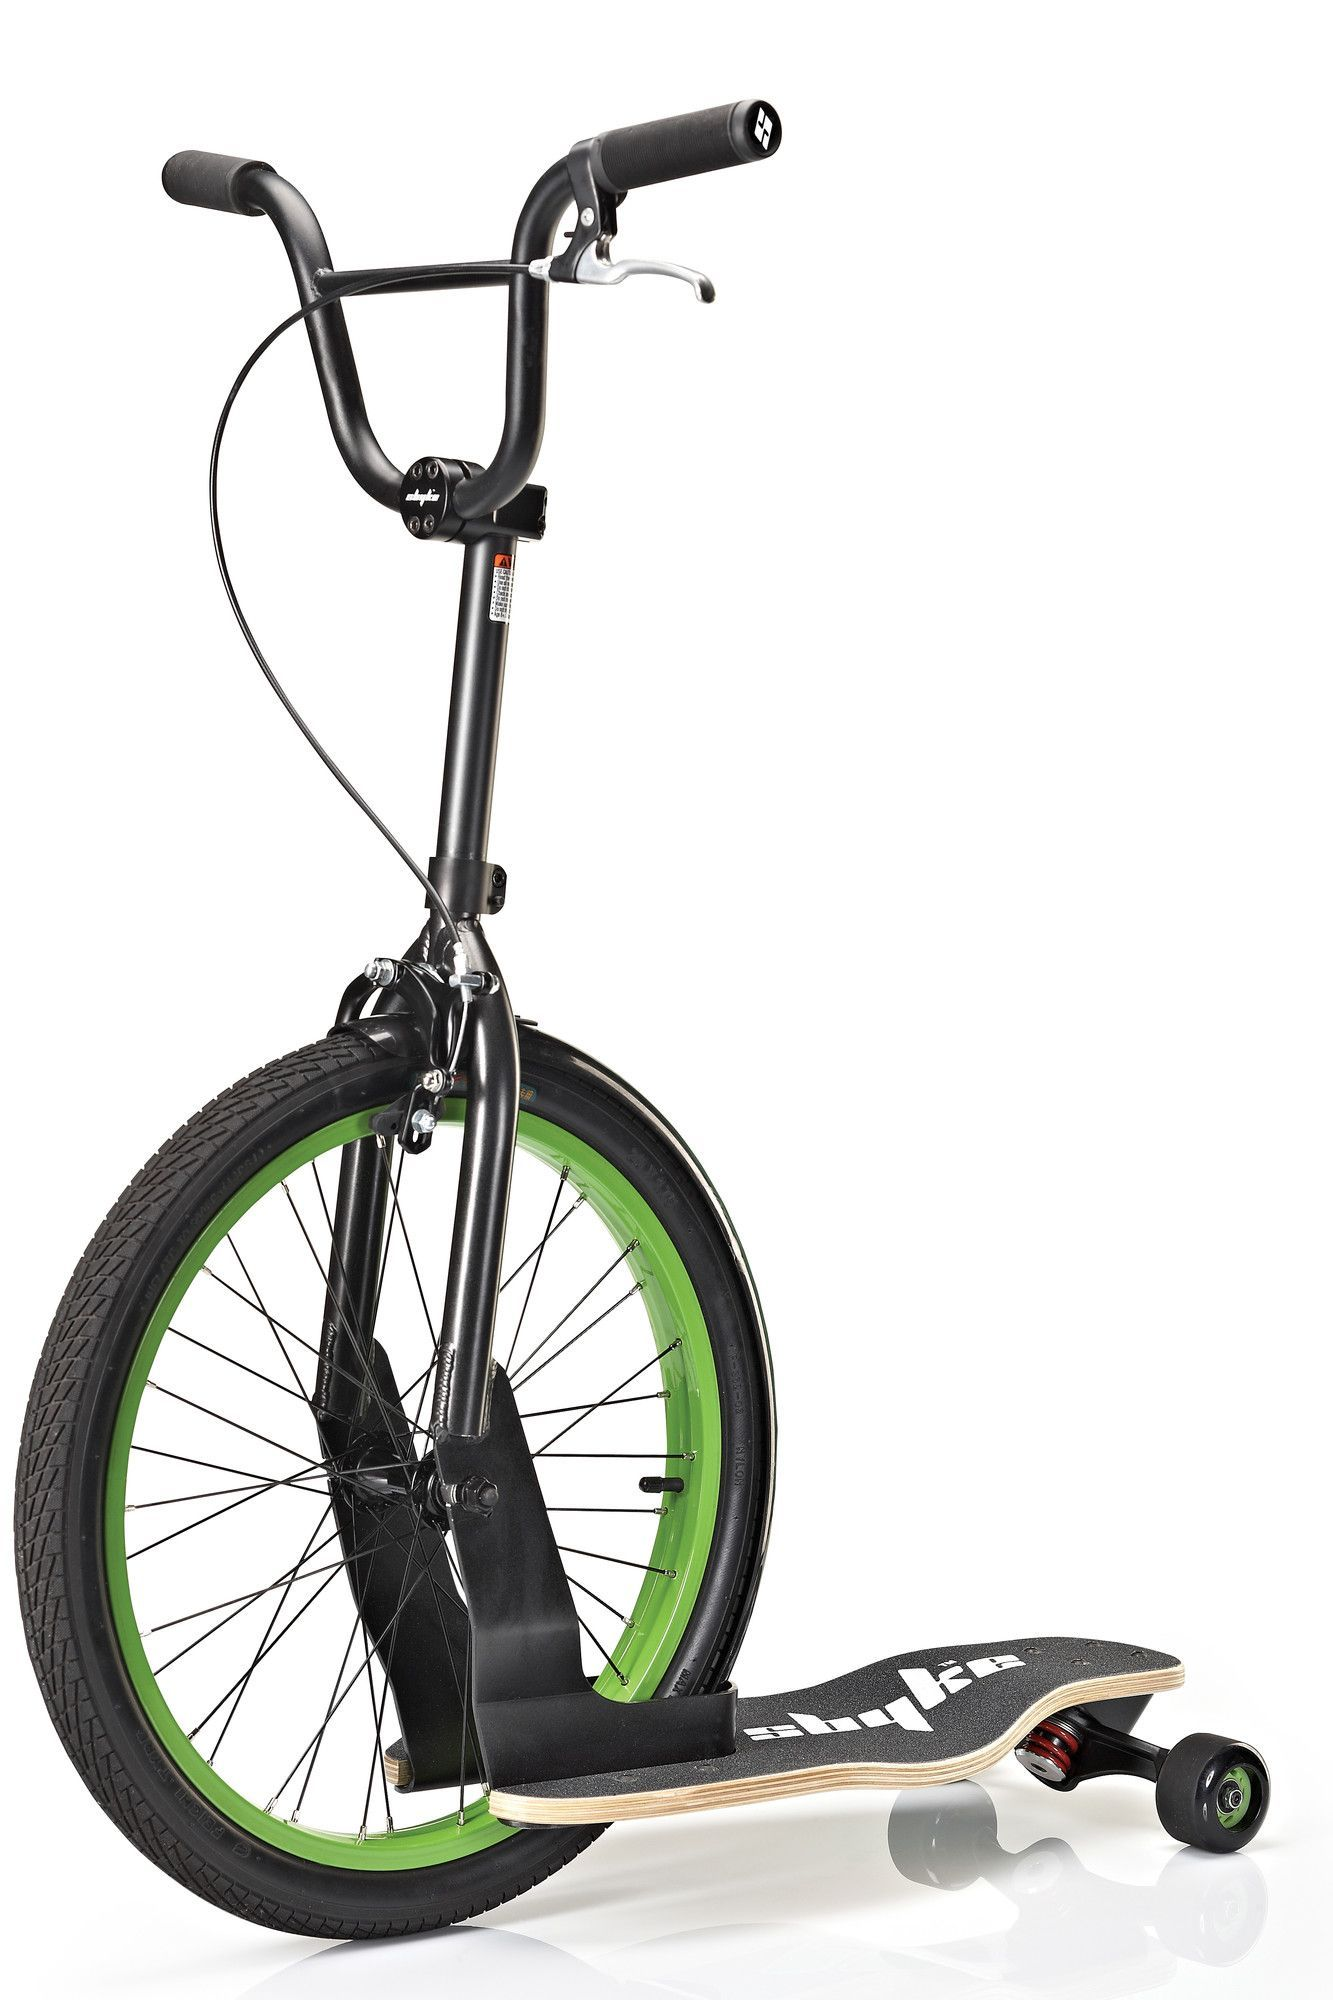 P20 Skateboard Bike Hybrid Kick Scooter Kick Scooter Bike